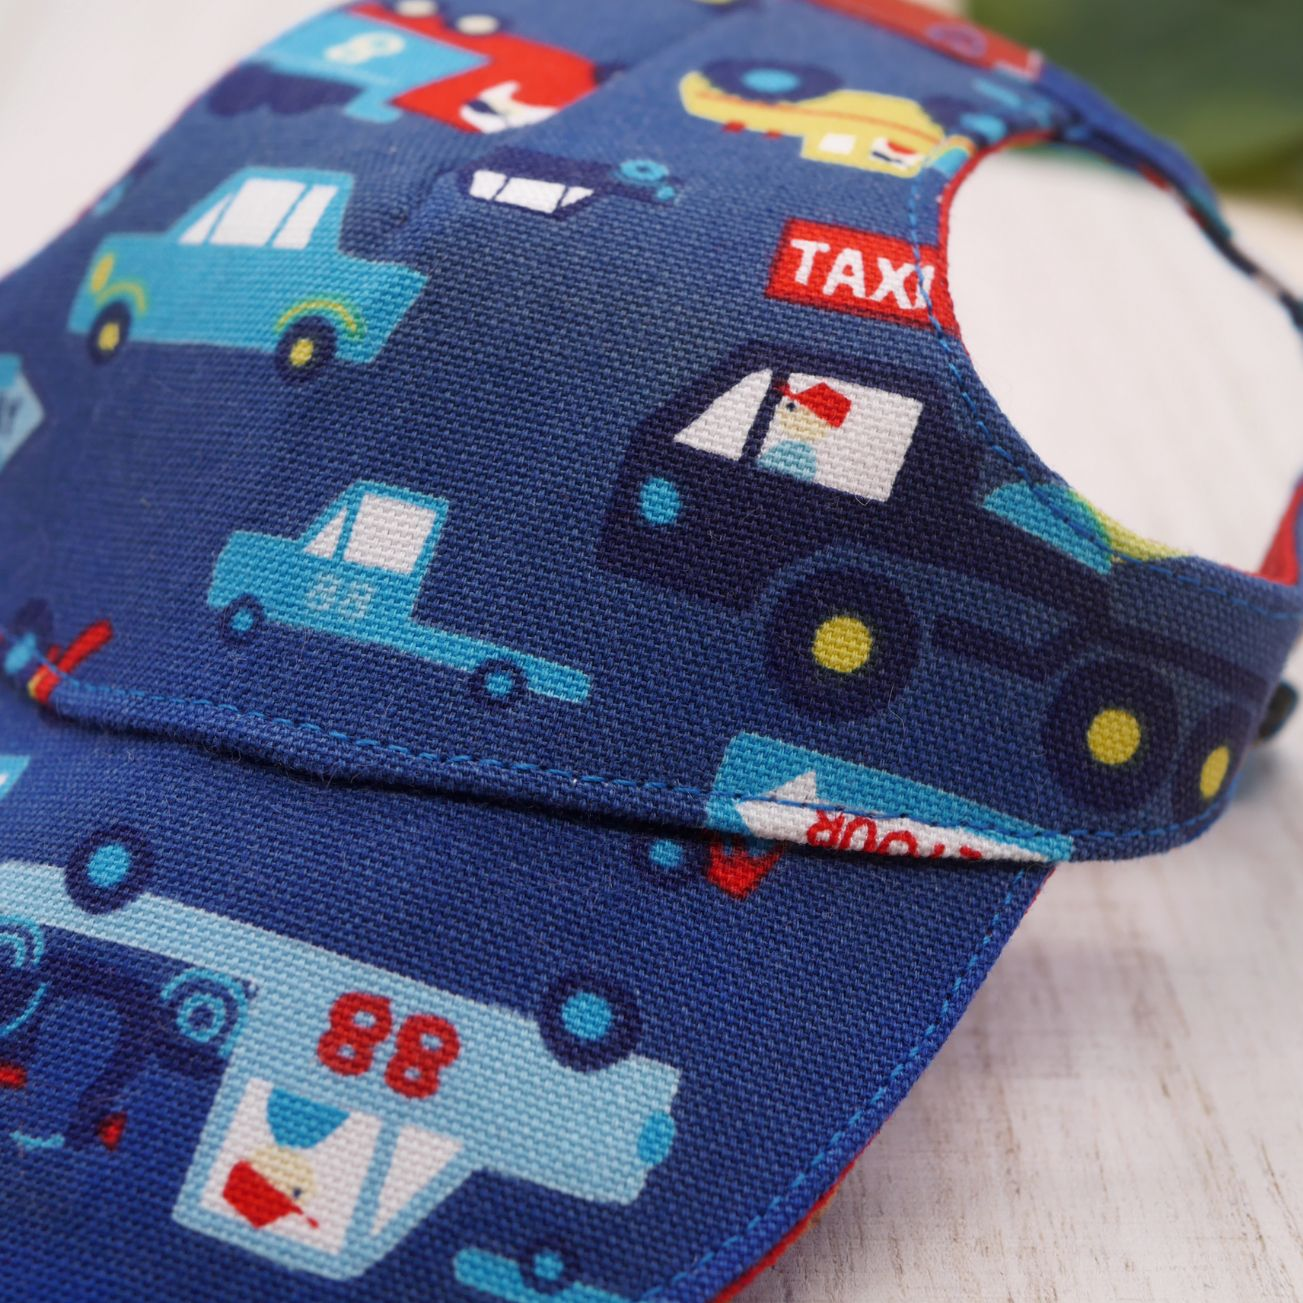 Walking Caps For Him - Mr Taxi - The Pet's Couture